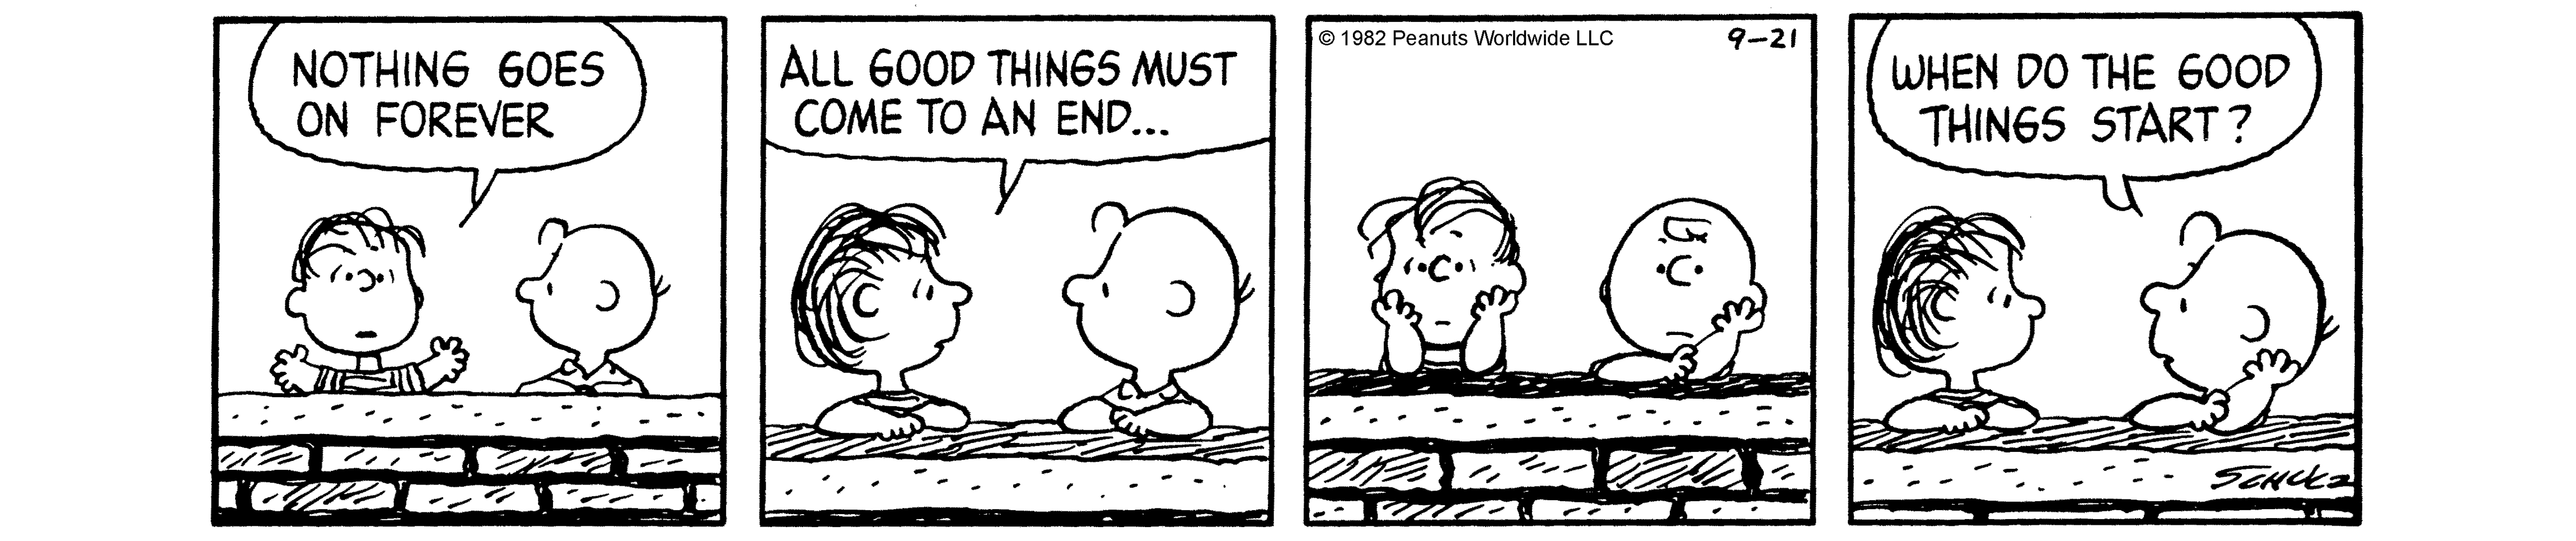 A black and white comic strip of two boys leaning on a fence.